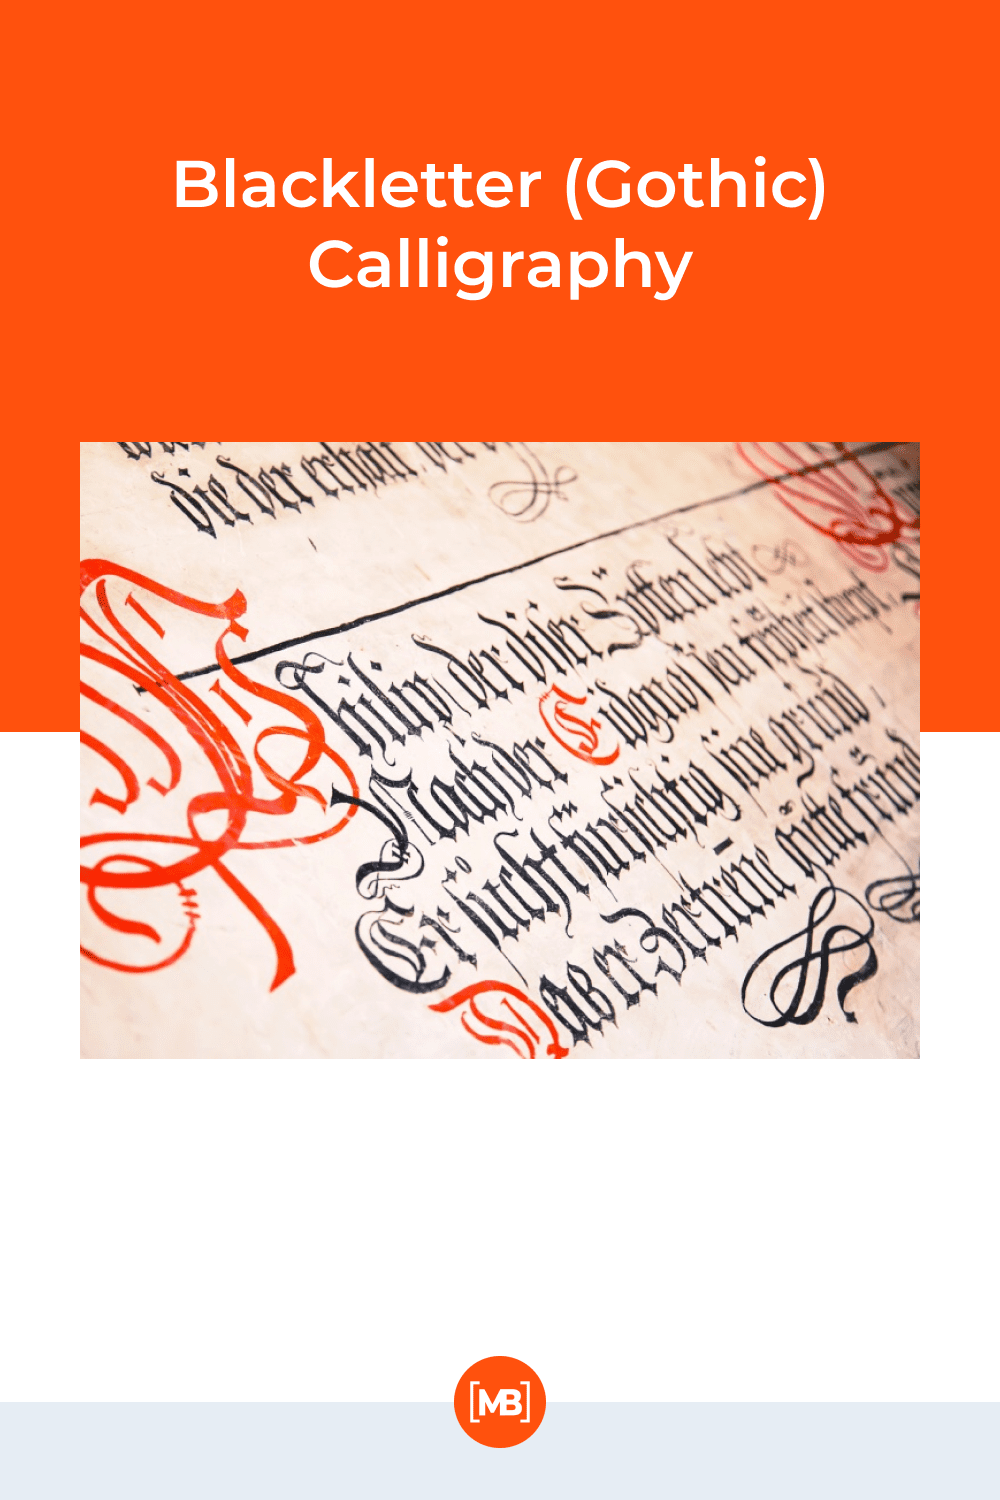 Blackletter (gothic) calligraphy.